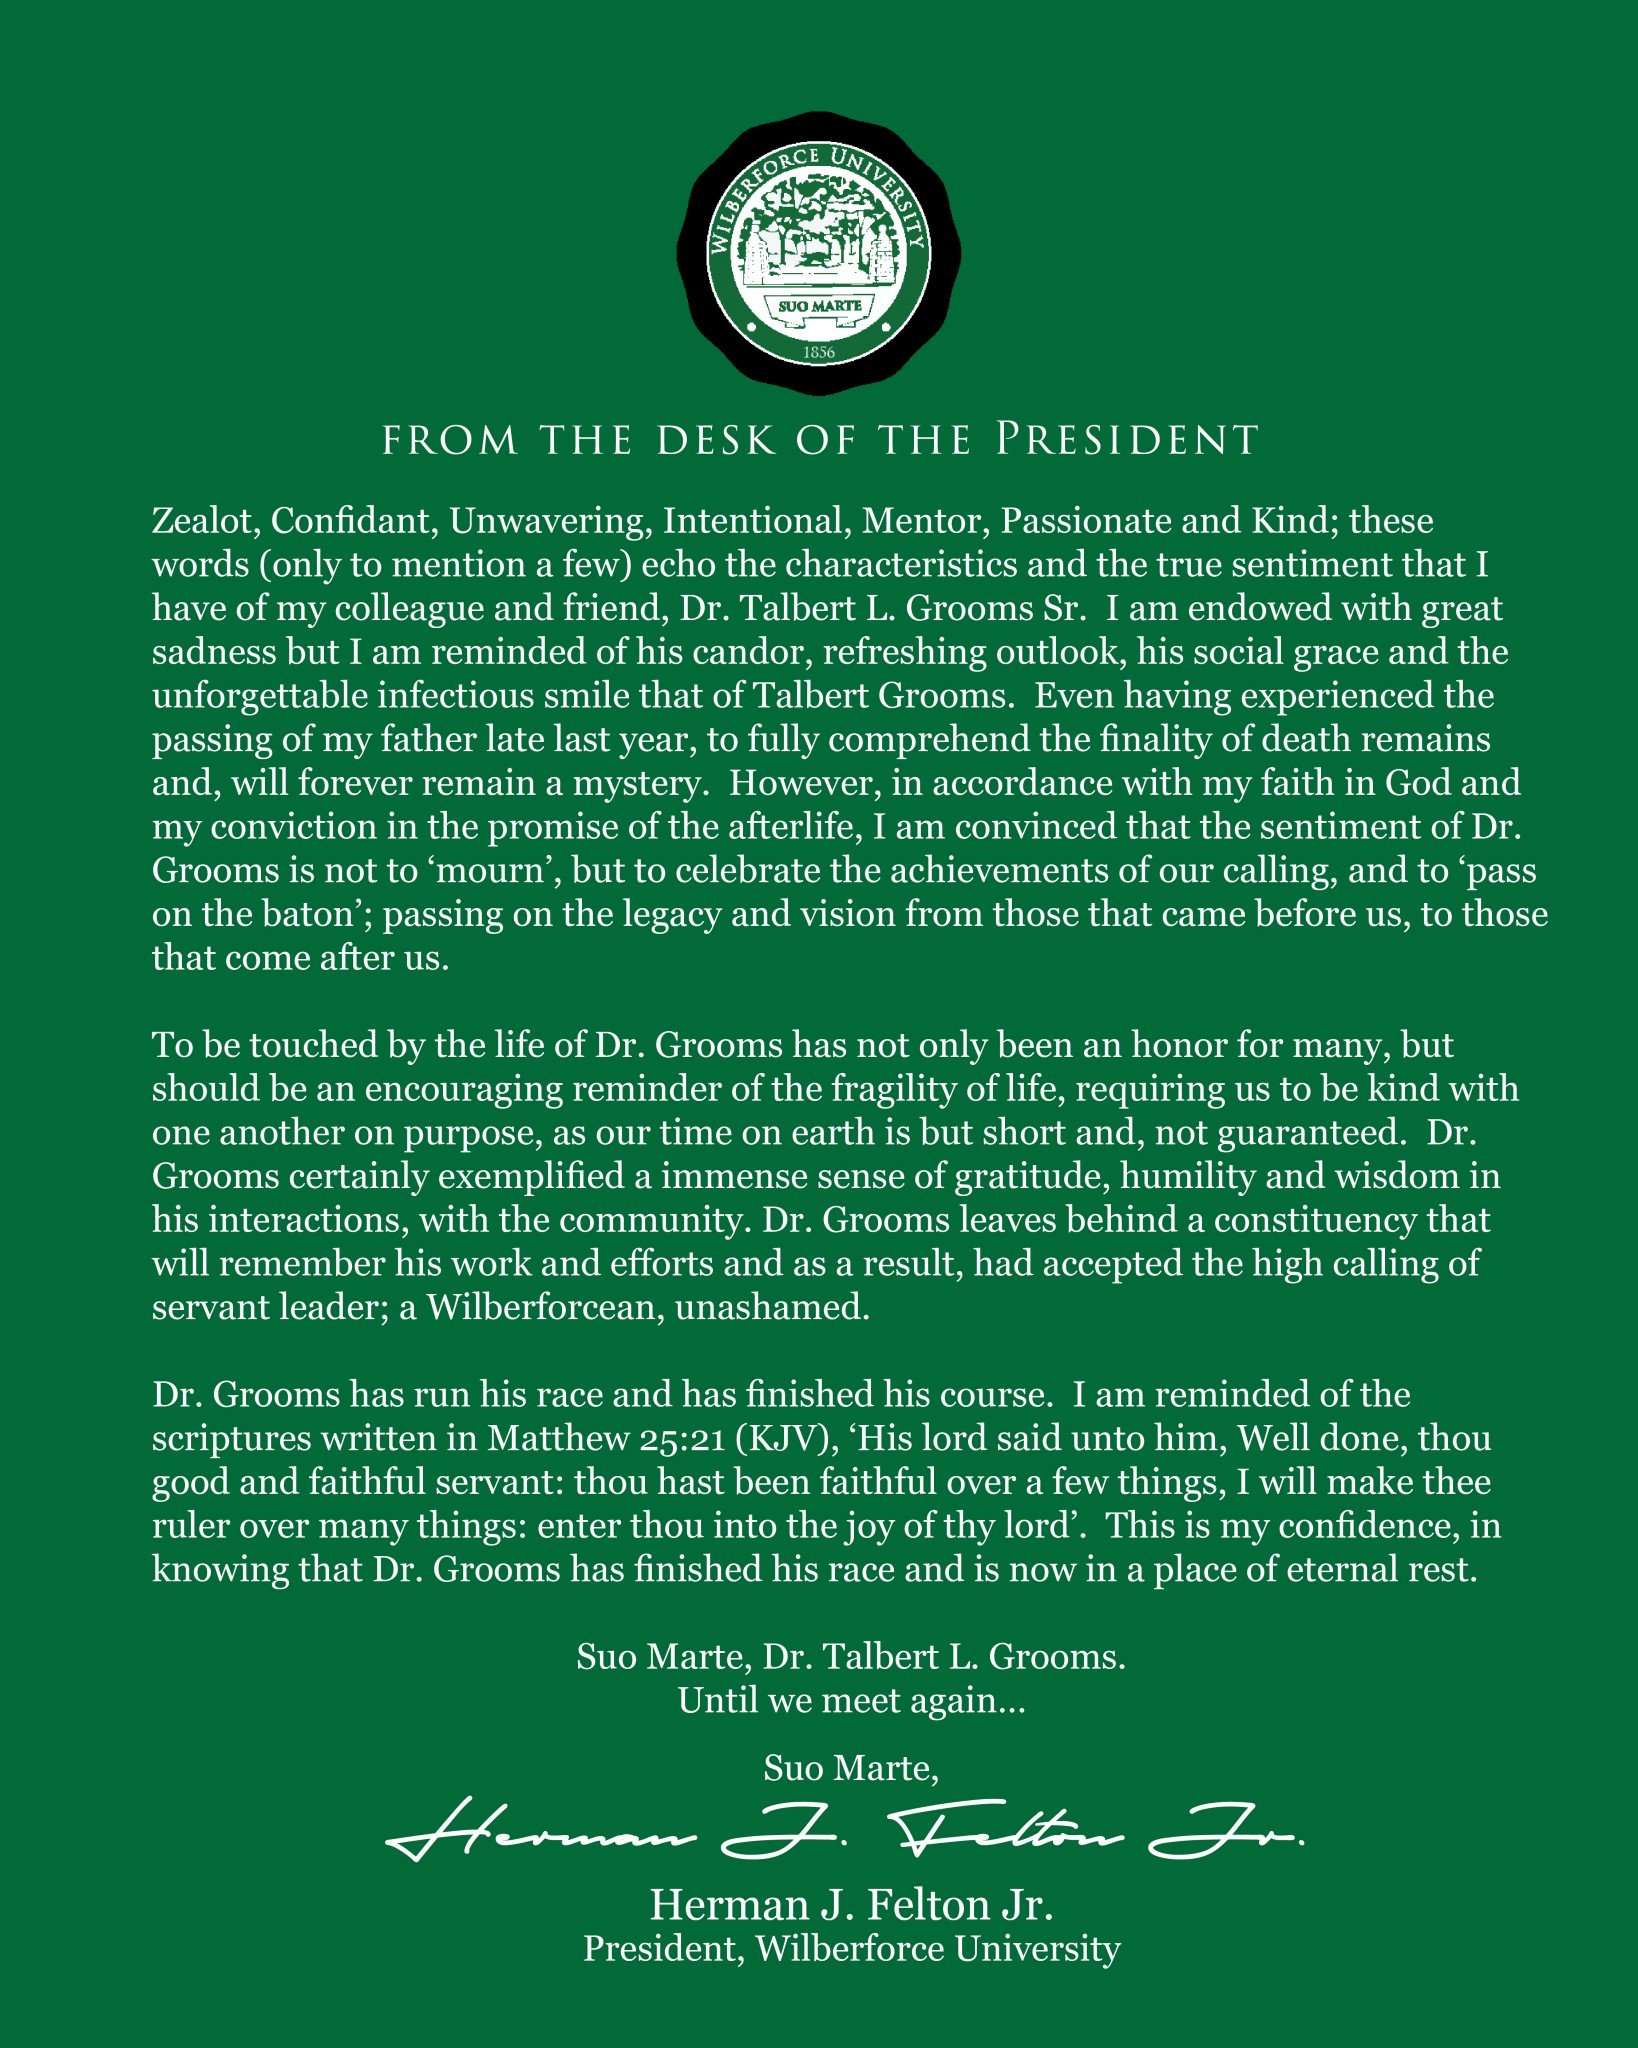 Special Message from the Wilberforce University President